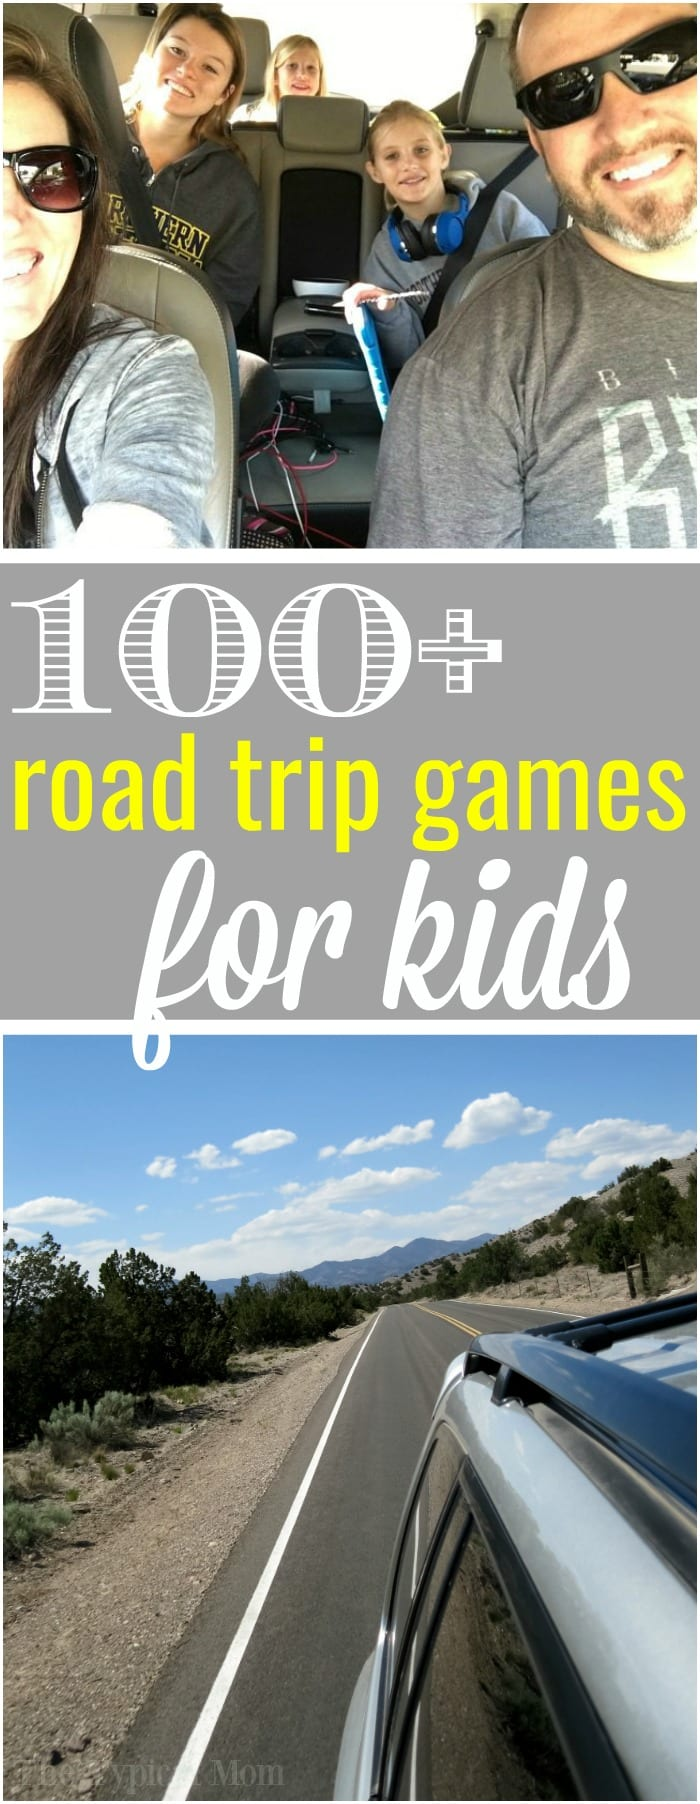 100+ road trip games for kids to avoid the dreaded